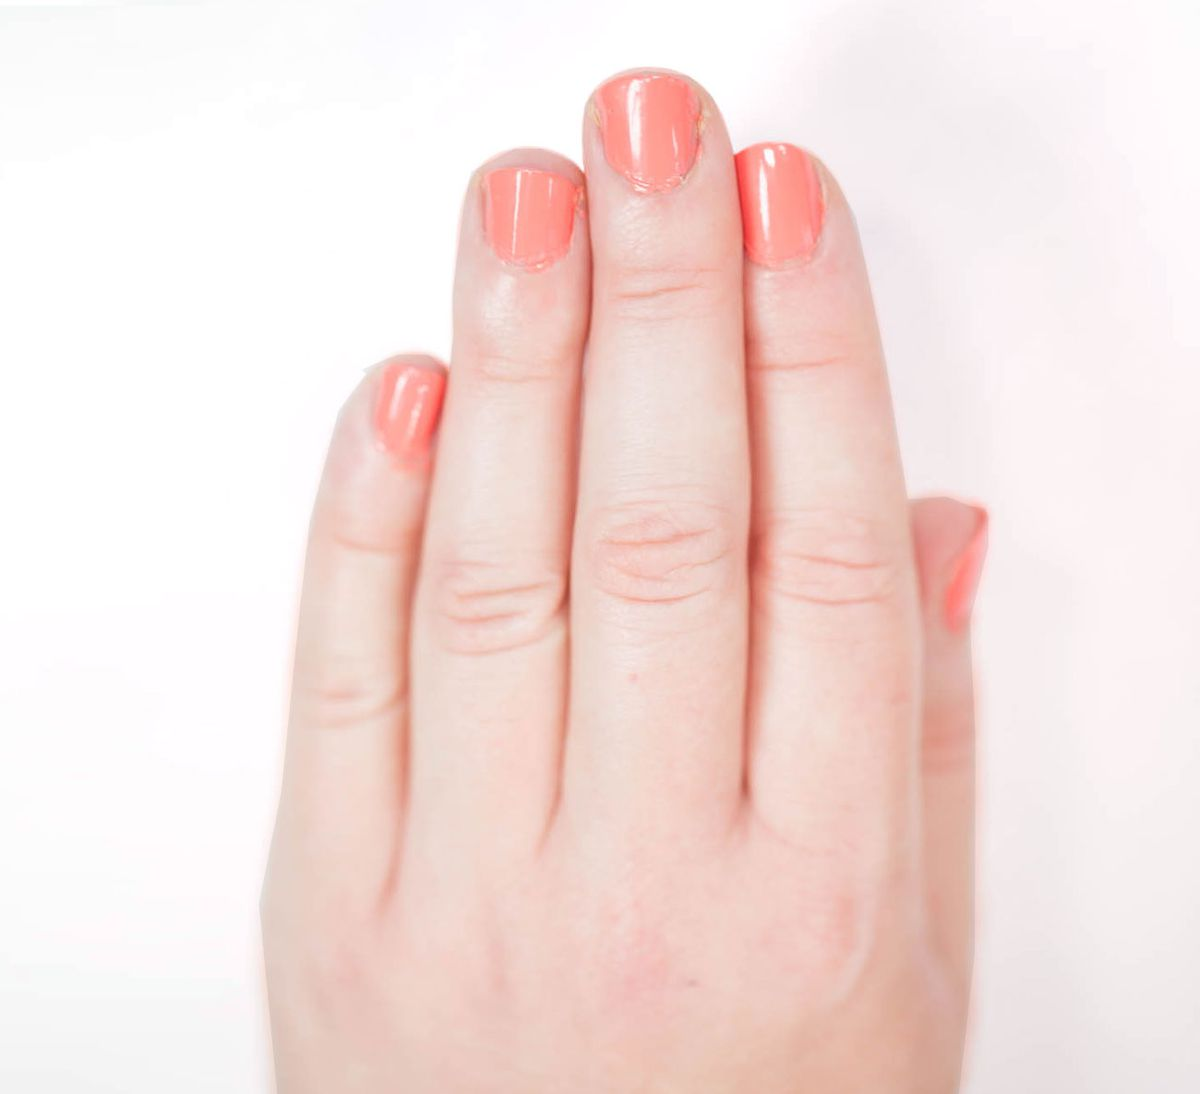 I Channeled My Nail Salon Guilt into Becoming an At-Home Manicure ...